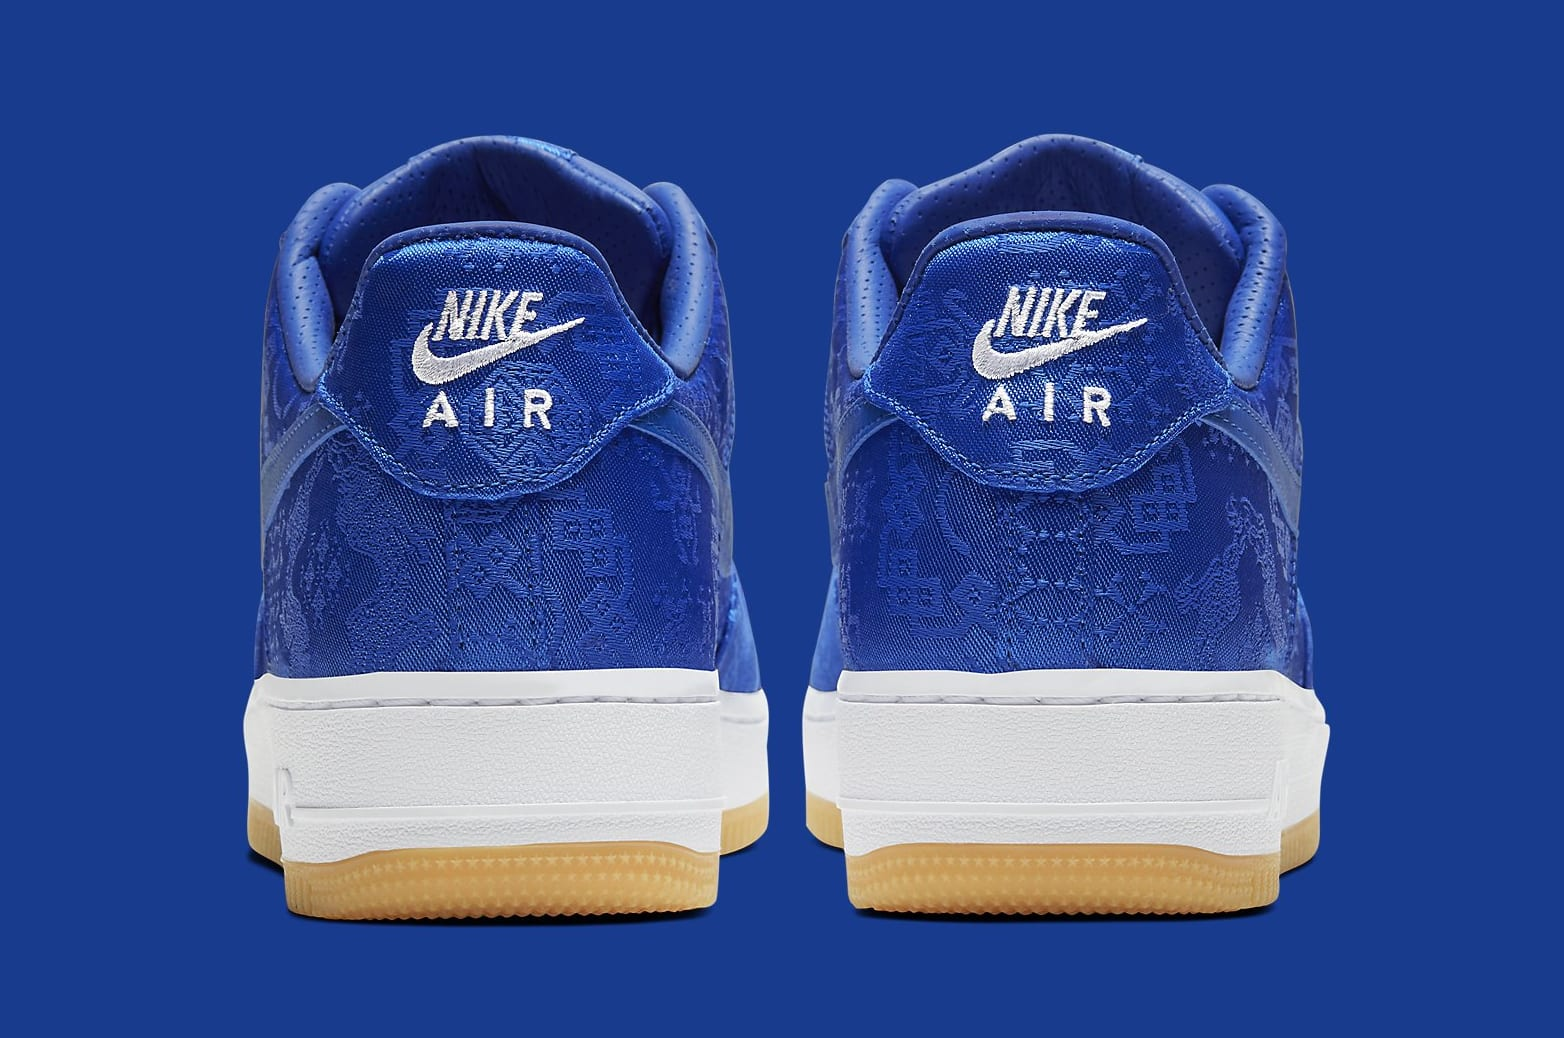 clot-nike-air-force-1-low-blue-cj5290-400-heel